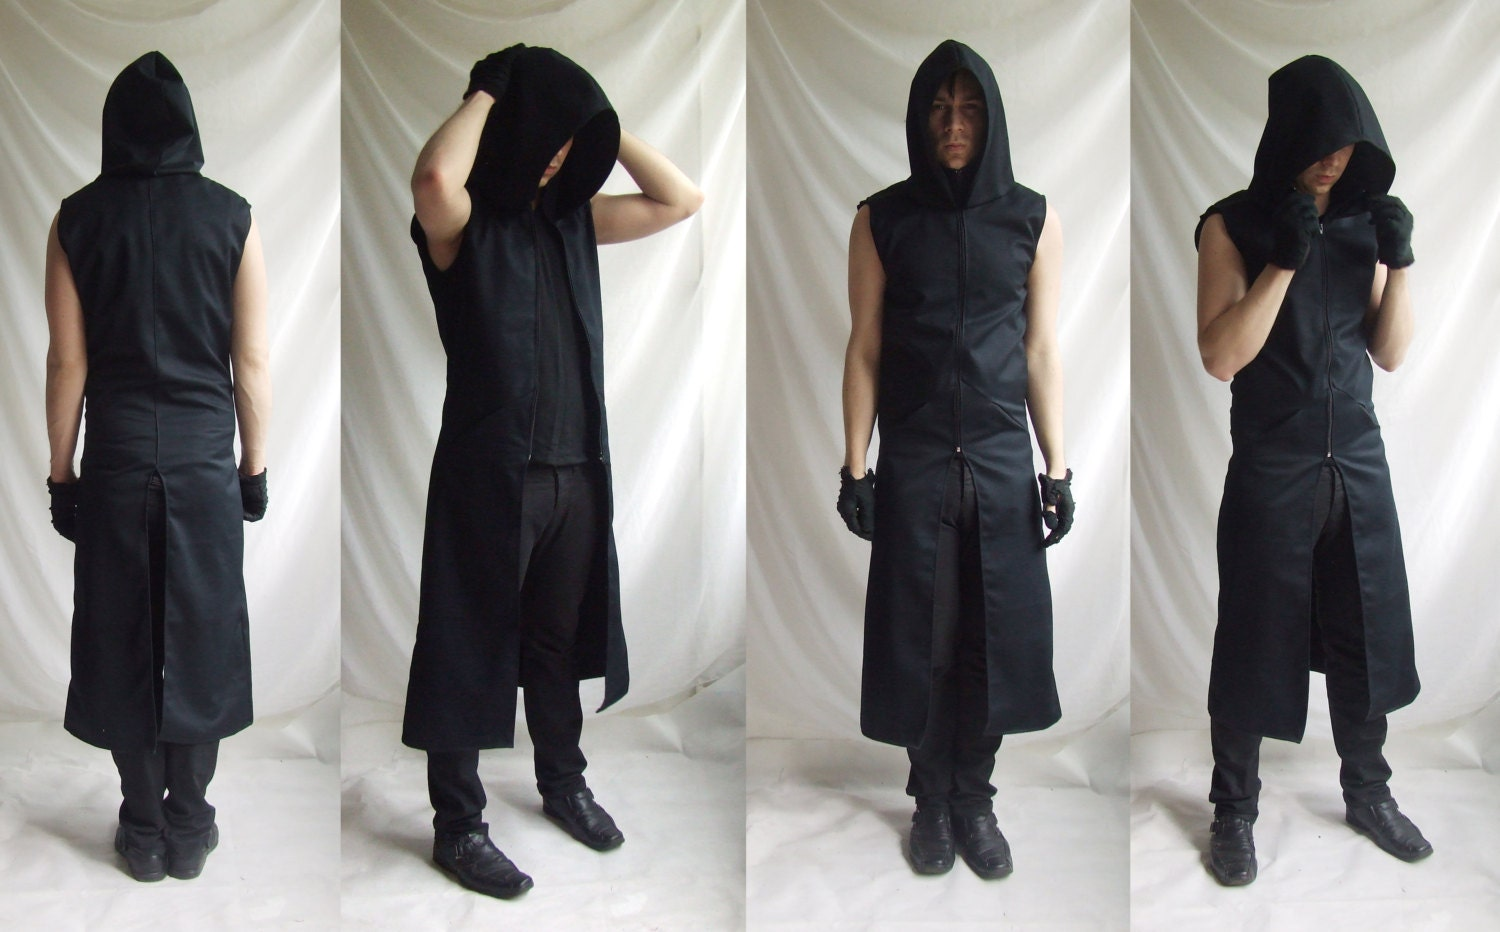 Sleeveless Reaper Hoodie (long mens black dark noir sleeveless trench fallout wasteland dystopic gothic industrial post apocalyptic fashion) NJd0bEIE